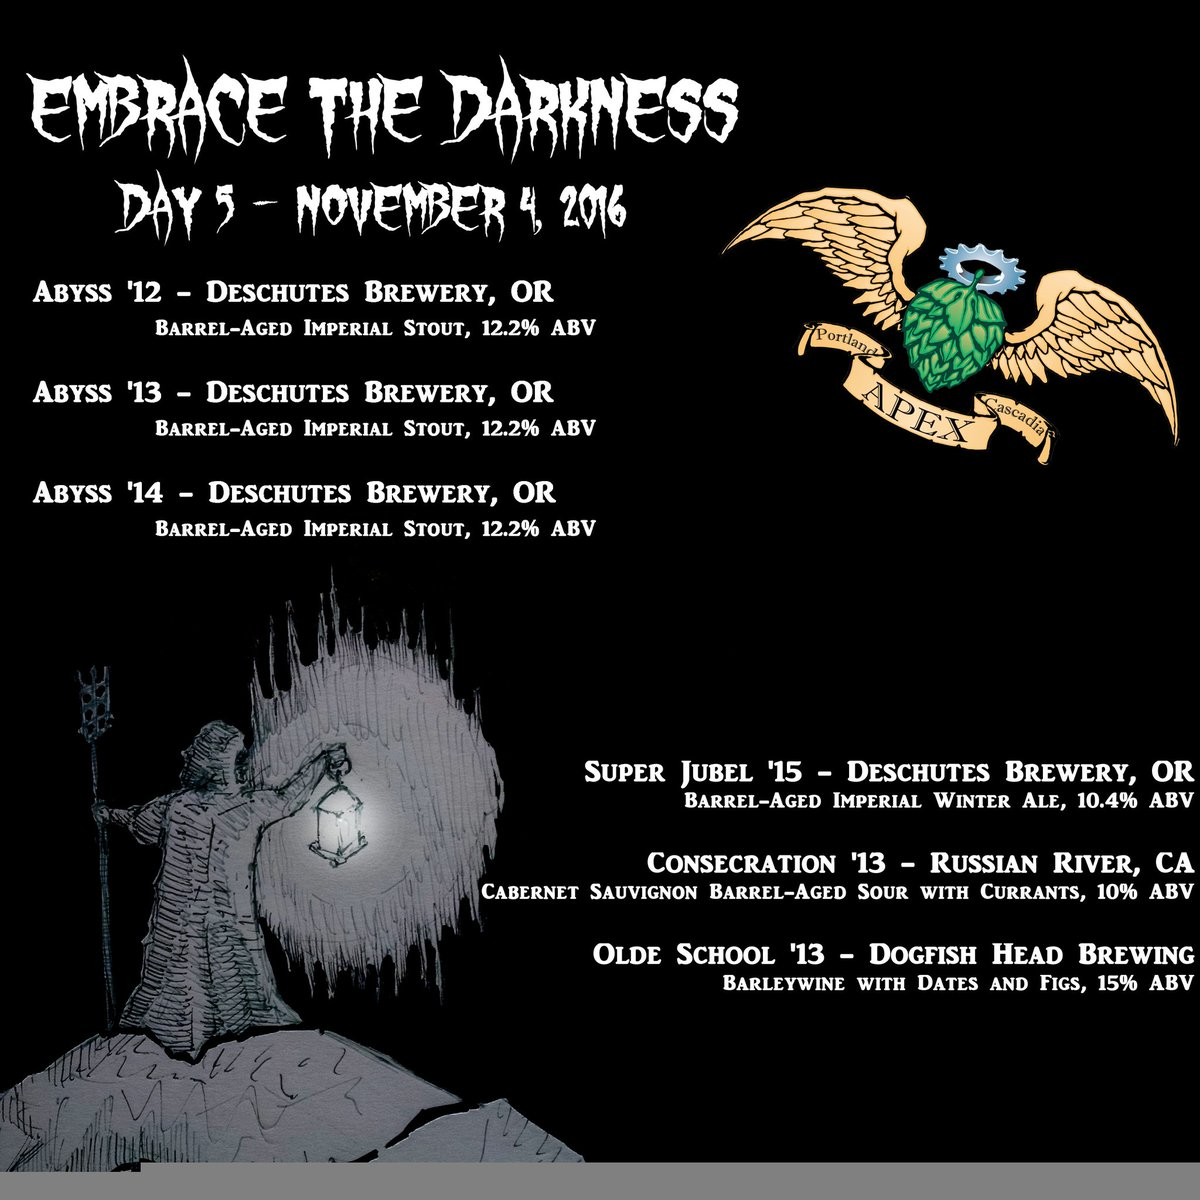 APEX Embrace the Darkness 2016 - Day 5